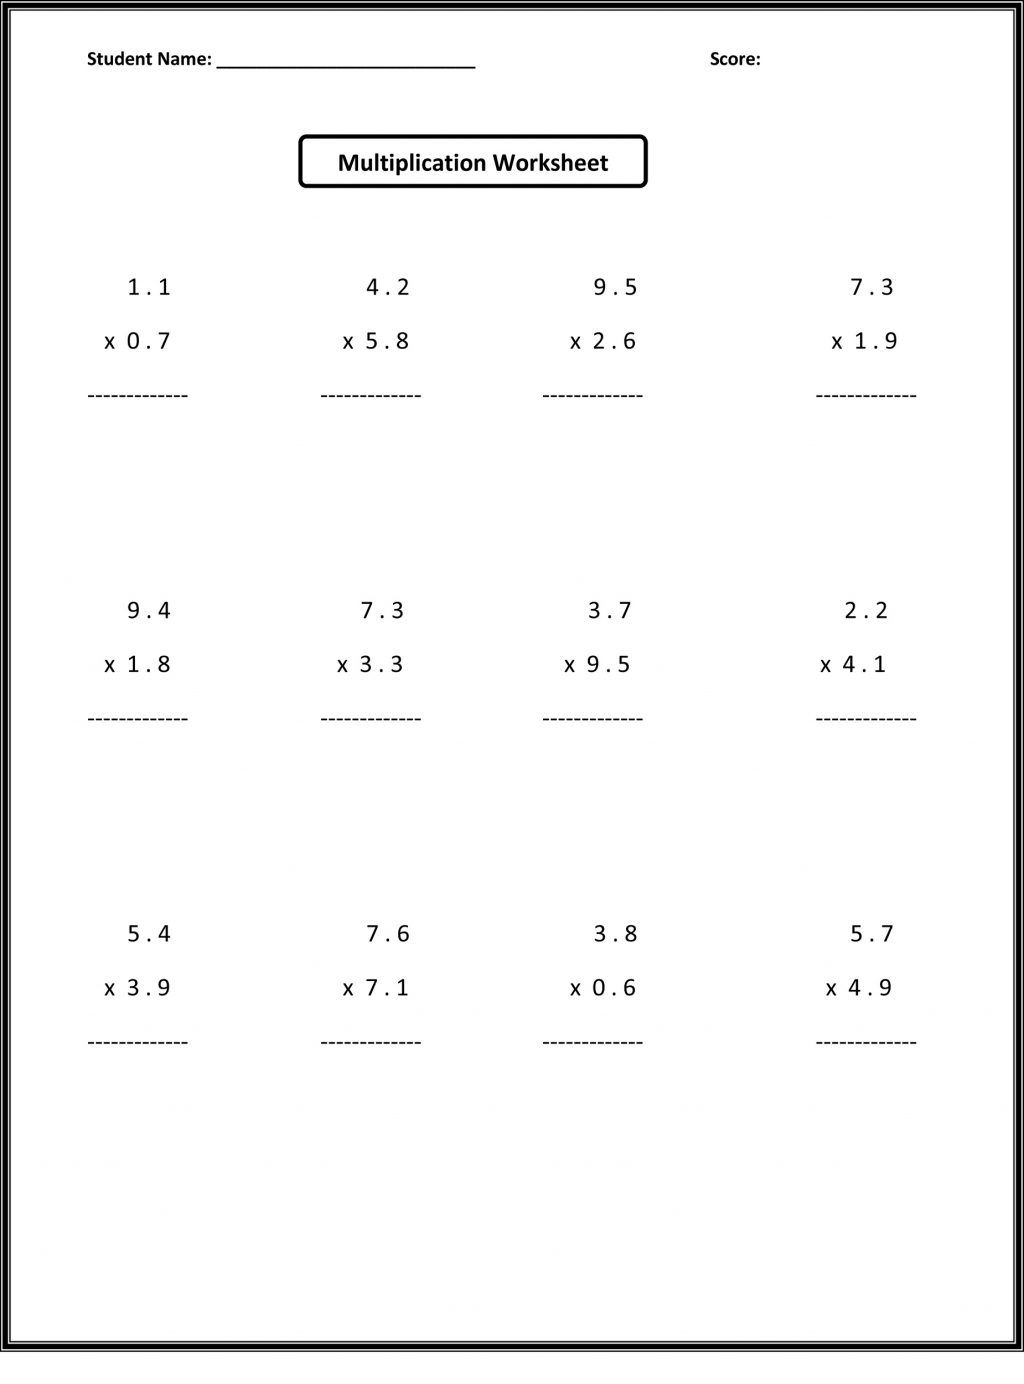 Worksheet Ideas ~ 6Th Grade Mathheetsheet Printable Free 7Th regarding Printable Multiplication Worksheets 6Th Grade